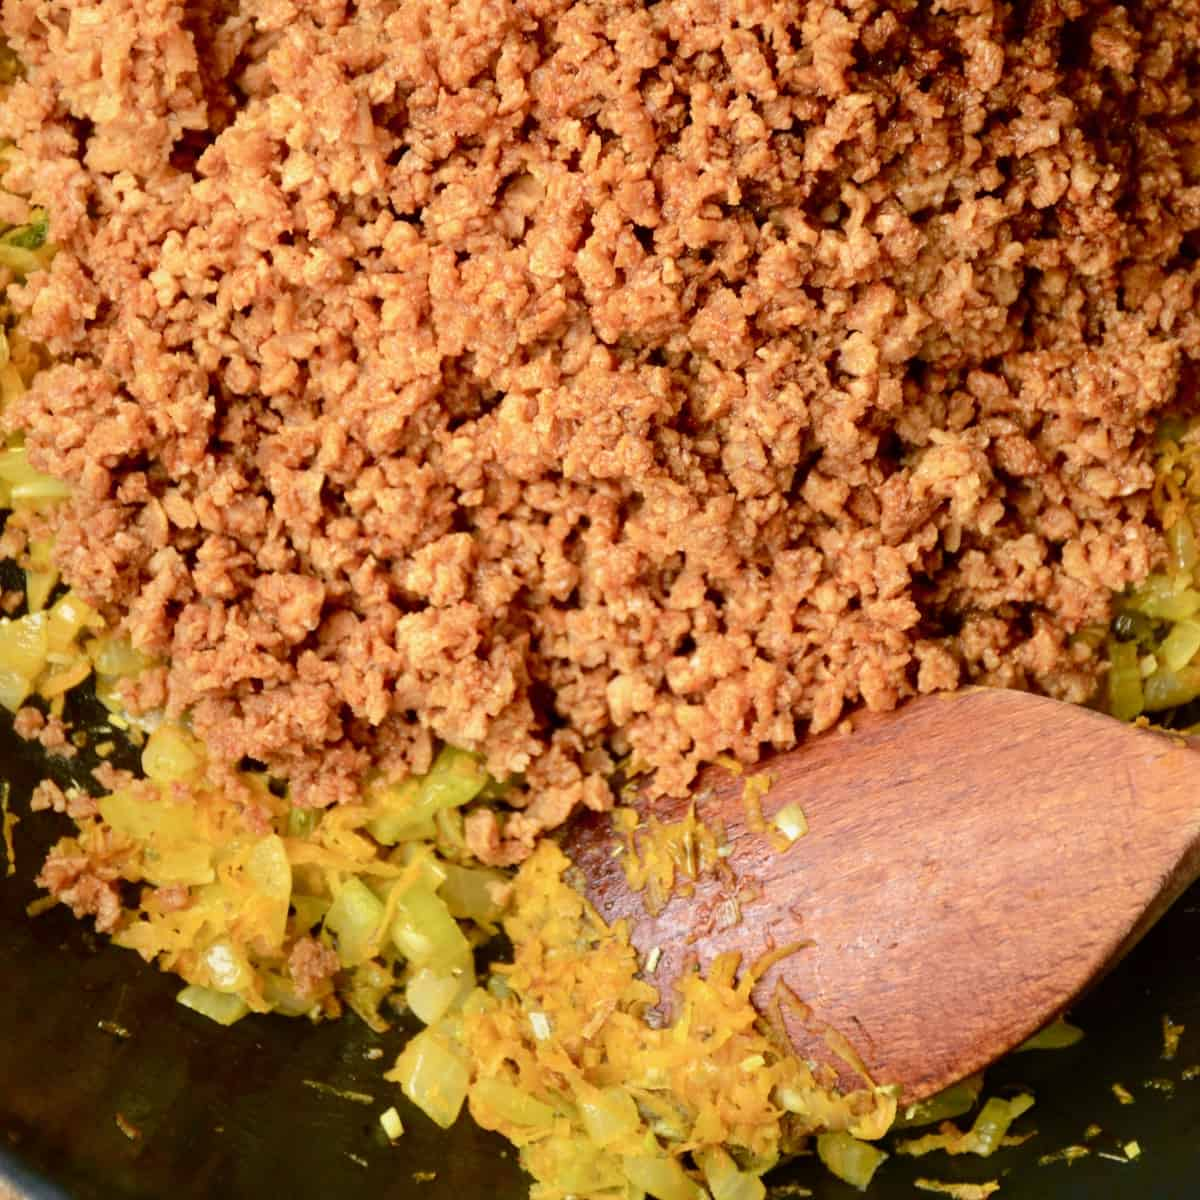 Rehydrated soy mince resembling the look of ground meat is added into the frying pan.